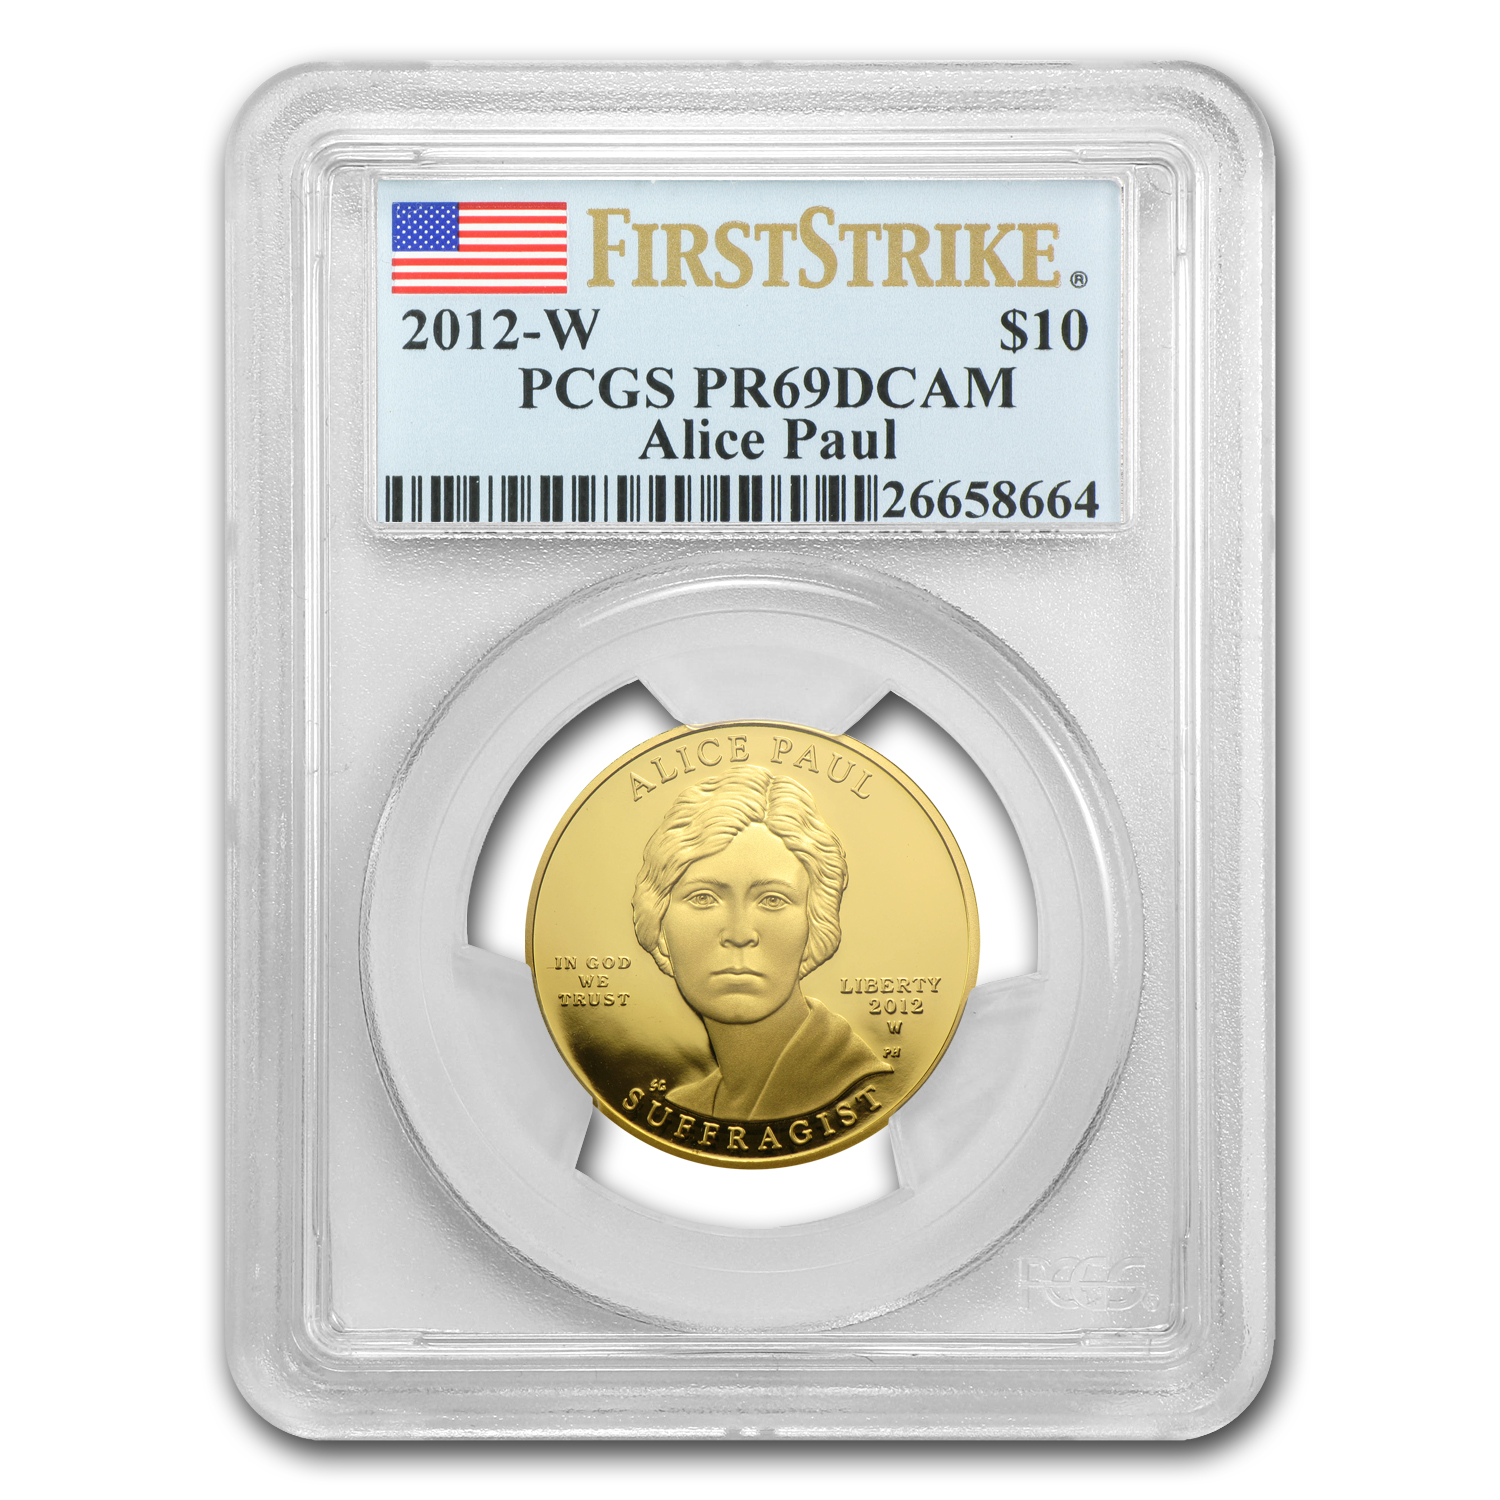 2012-W 1/2 oz Proof Gold Alice Paul PR-69 PCGS (FS)